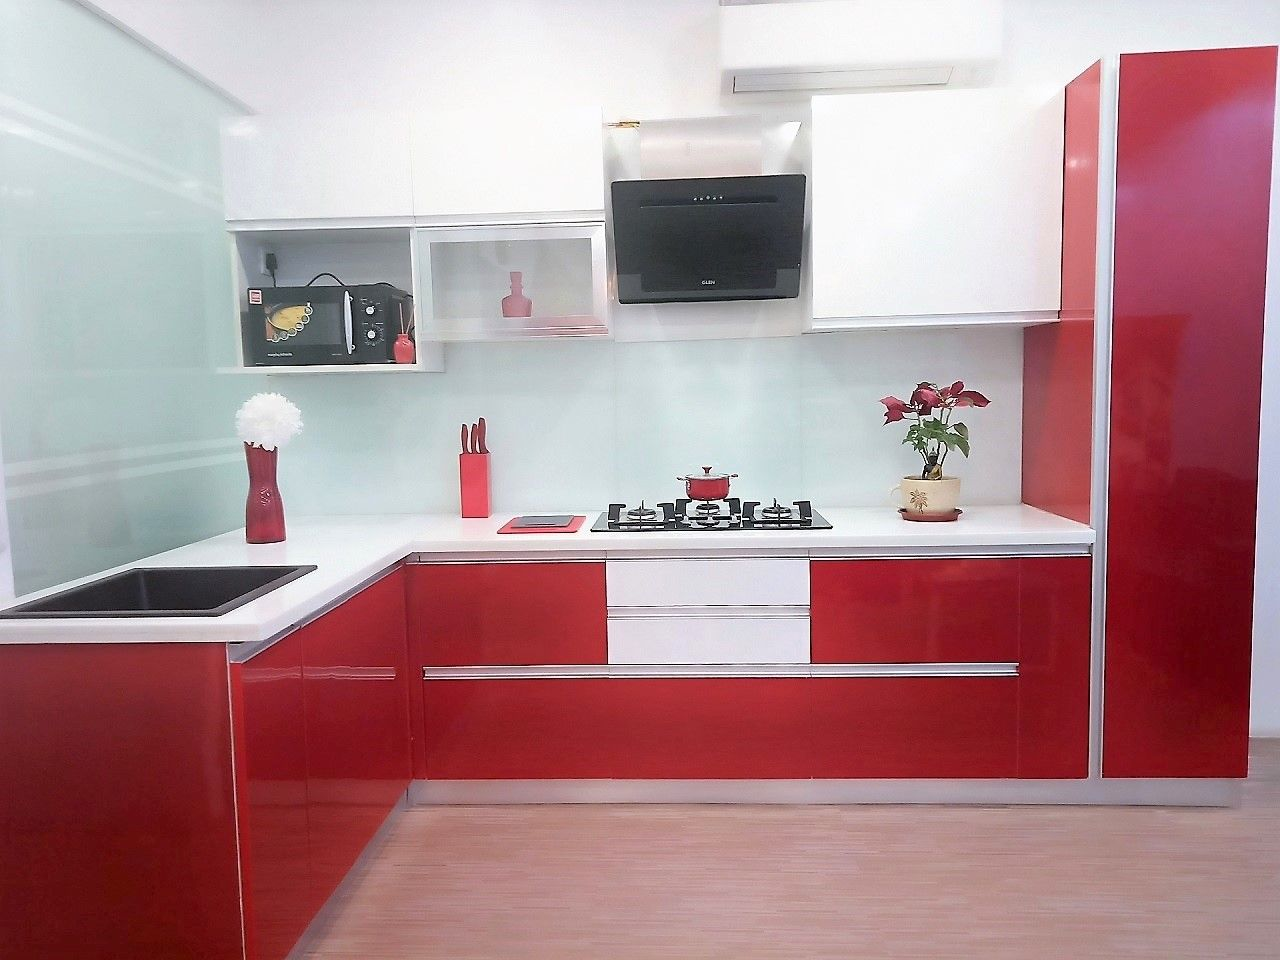 This Is A Sample Kitchen In Easyhomz S Office Material Used Is